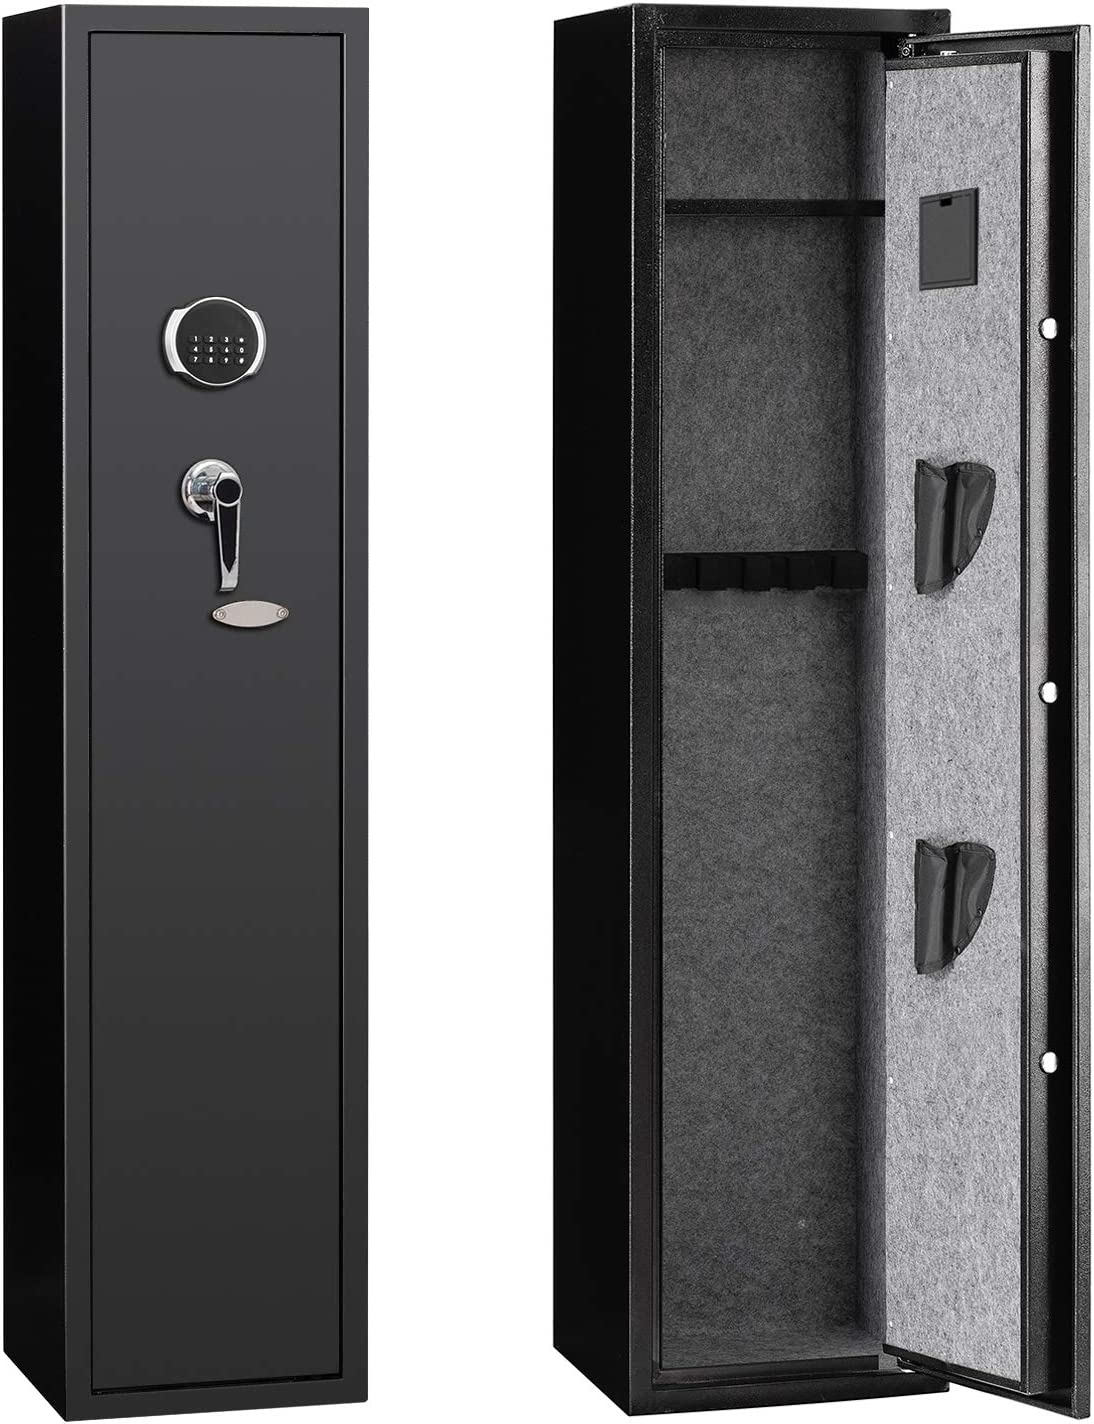 JINS&VICO Rifle Gun Safe, Quick Access 4-Gun Metal Rifle Gun Cabinet with Removable Shelf, All-Round Anti-Static Rifle Safe for Bullets and Valuables, with 2 Pistol Holsters